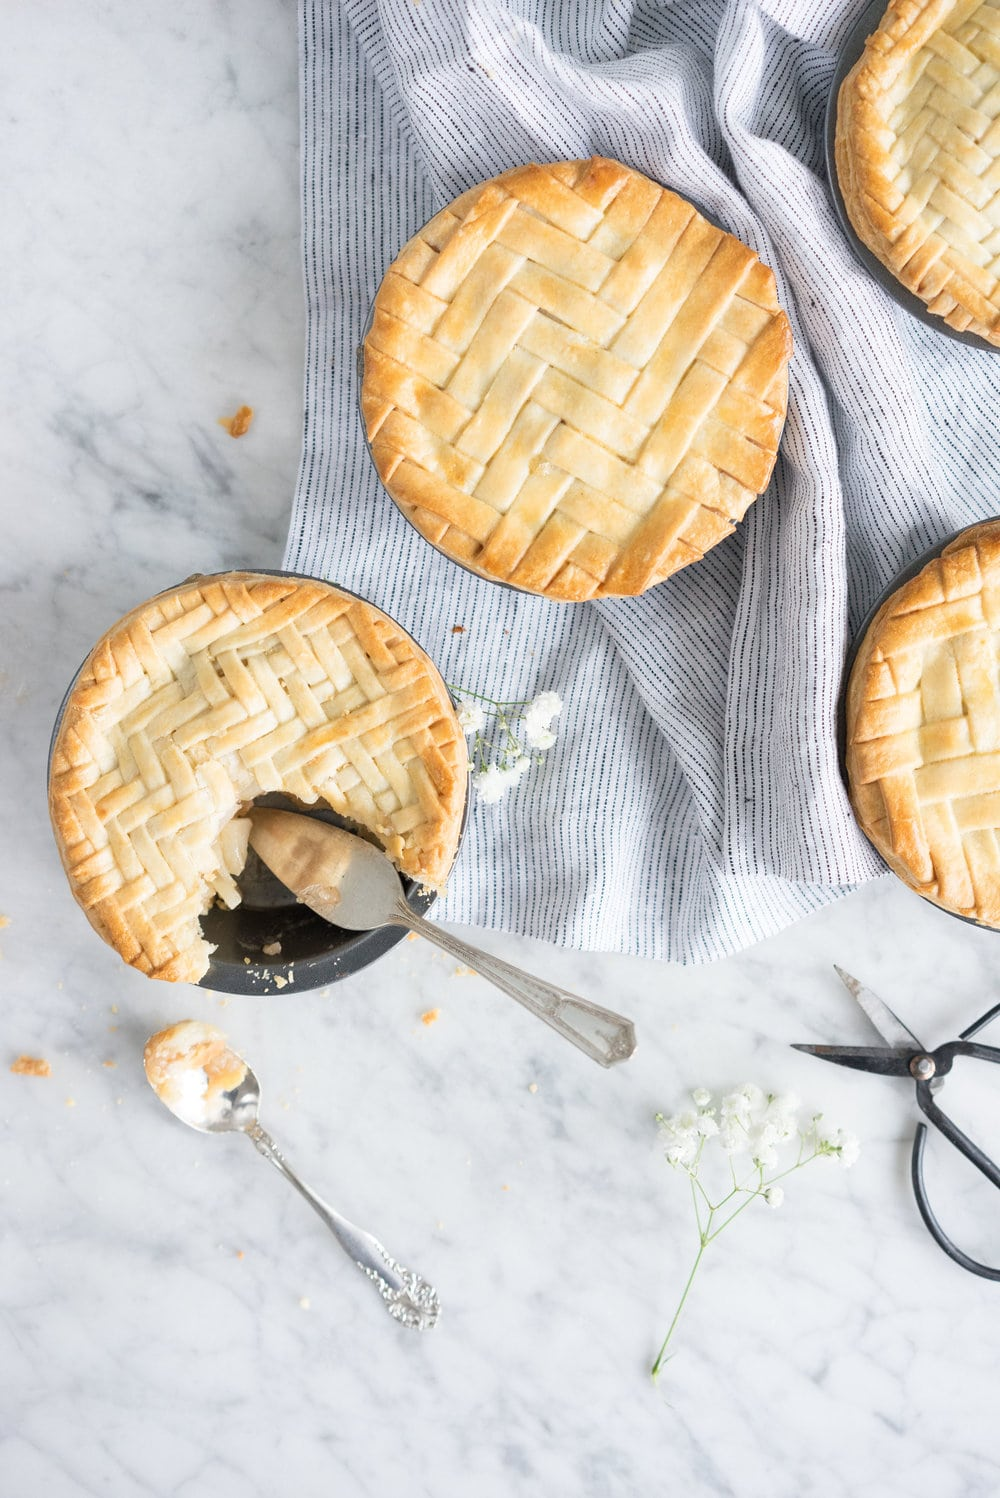 Apple and pear mini pies